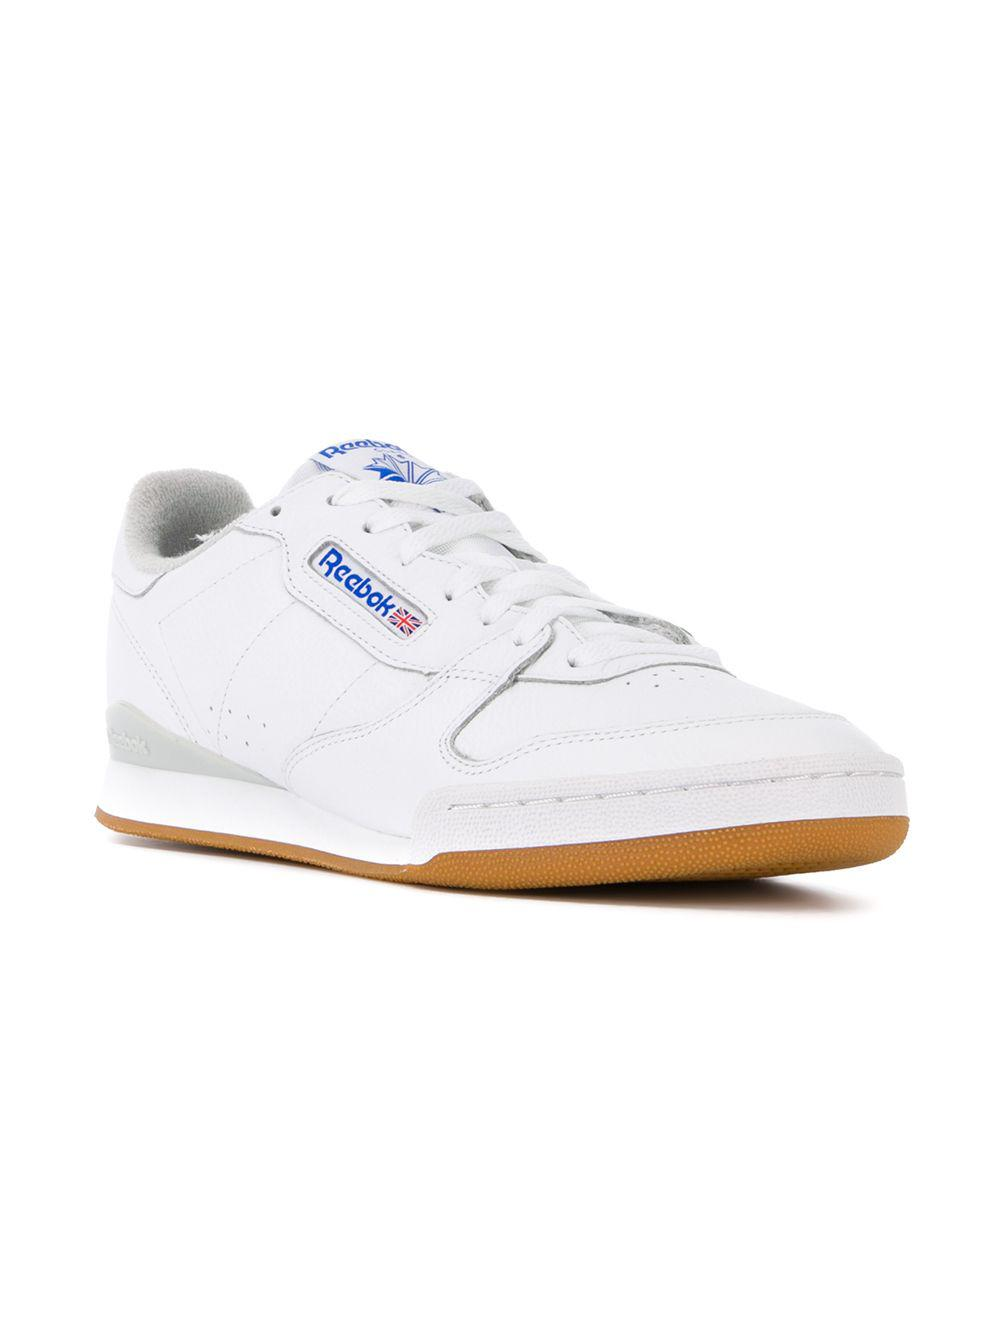 61c0f49b3701b8 Lyst - Reebok Phase 1 Gum in White for Men - Save 47%